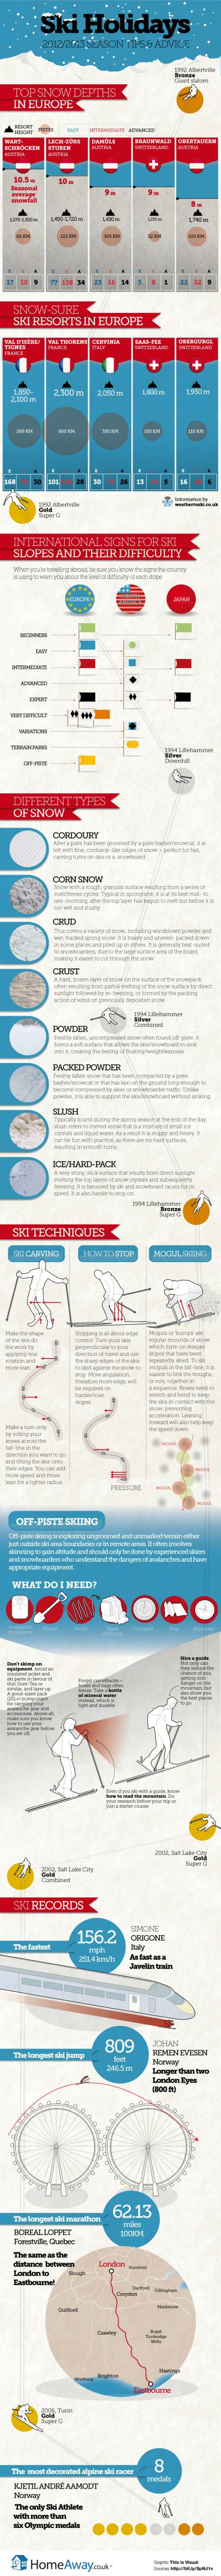 Ski Season Tips & Advice - Check out this infographic which contains interesting ski tips and advice on where to go this winter. #Ski #Season #Tips #Advice